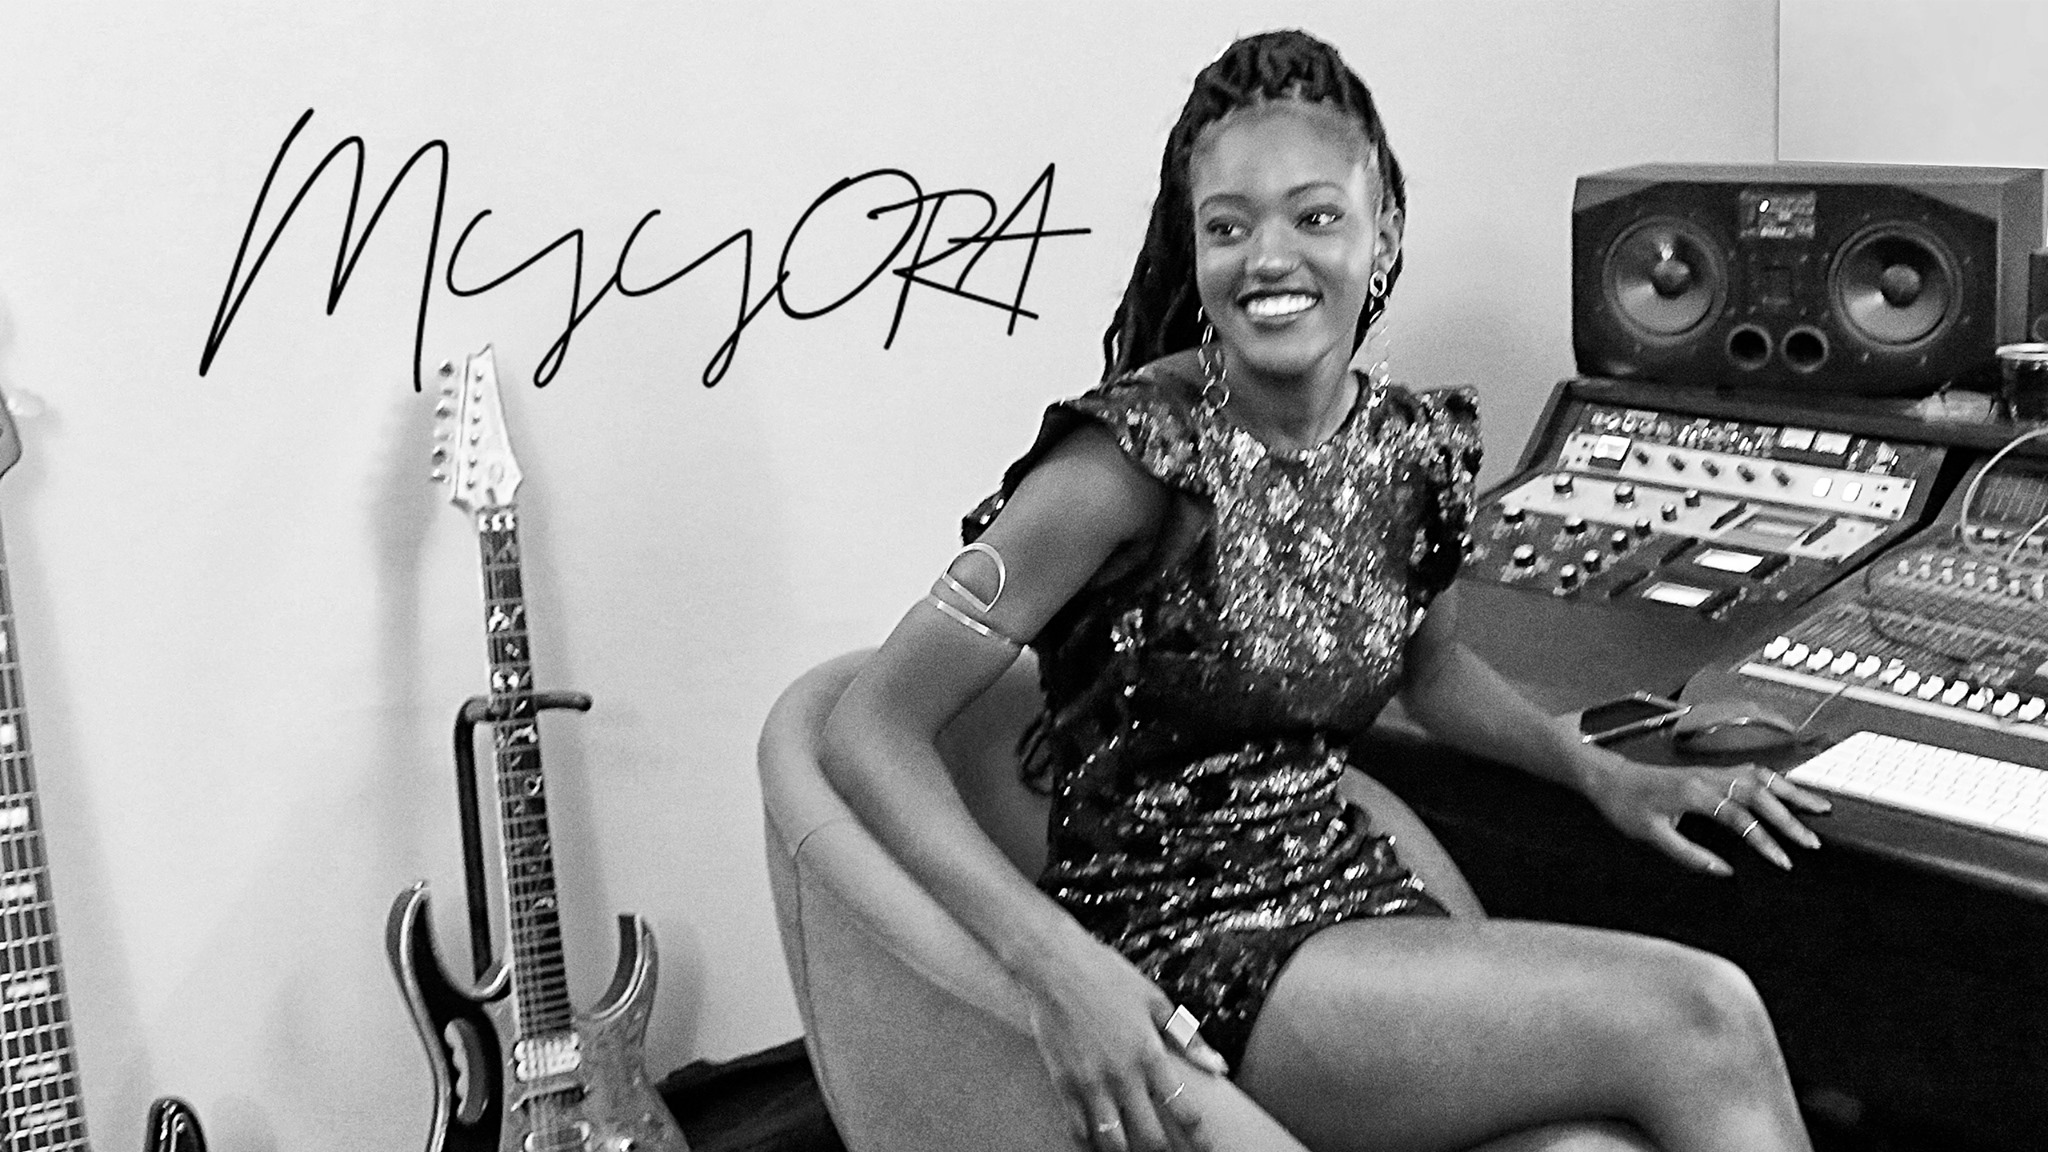 Myyora Offers Music Which Is The Essence Of Life